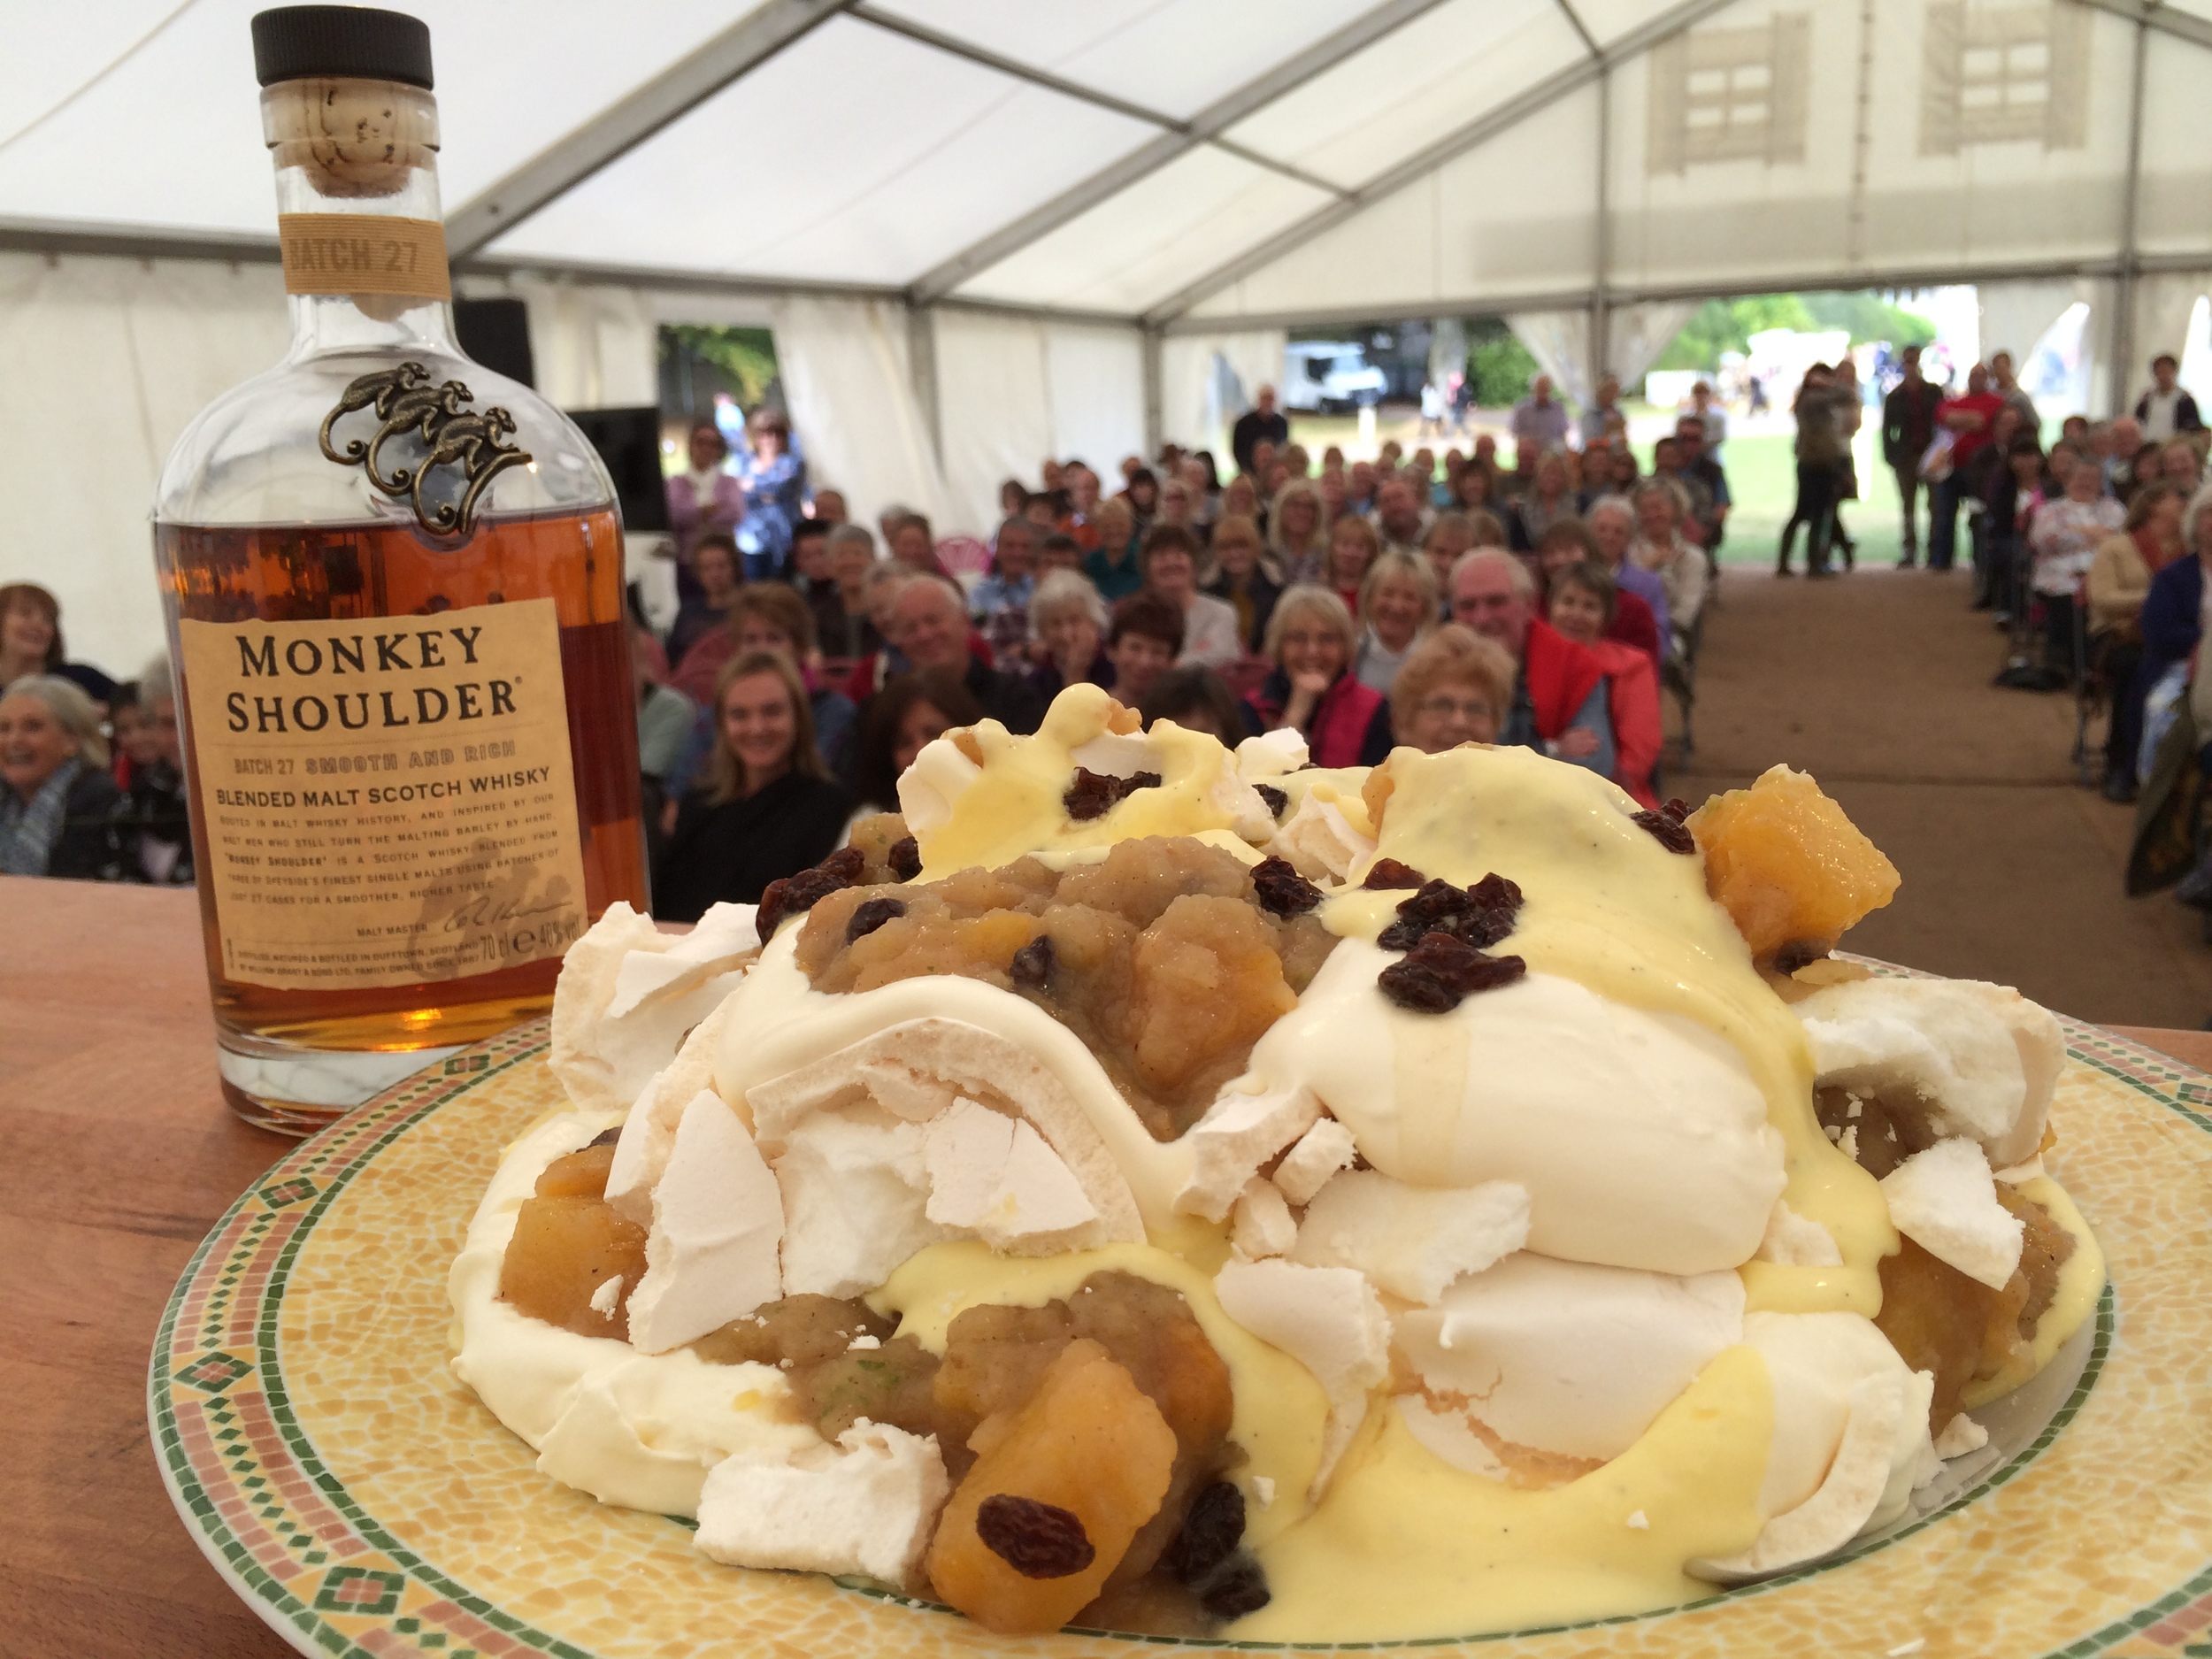 An audience at West Dean gardens enjoyed the Eton Mess (very messy!) with Monkey Shoulder